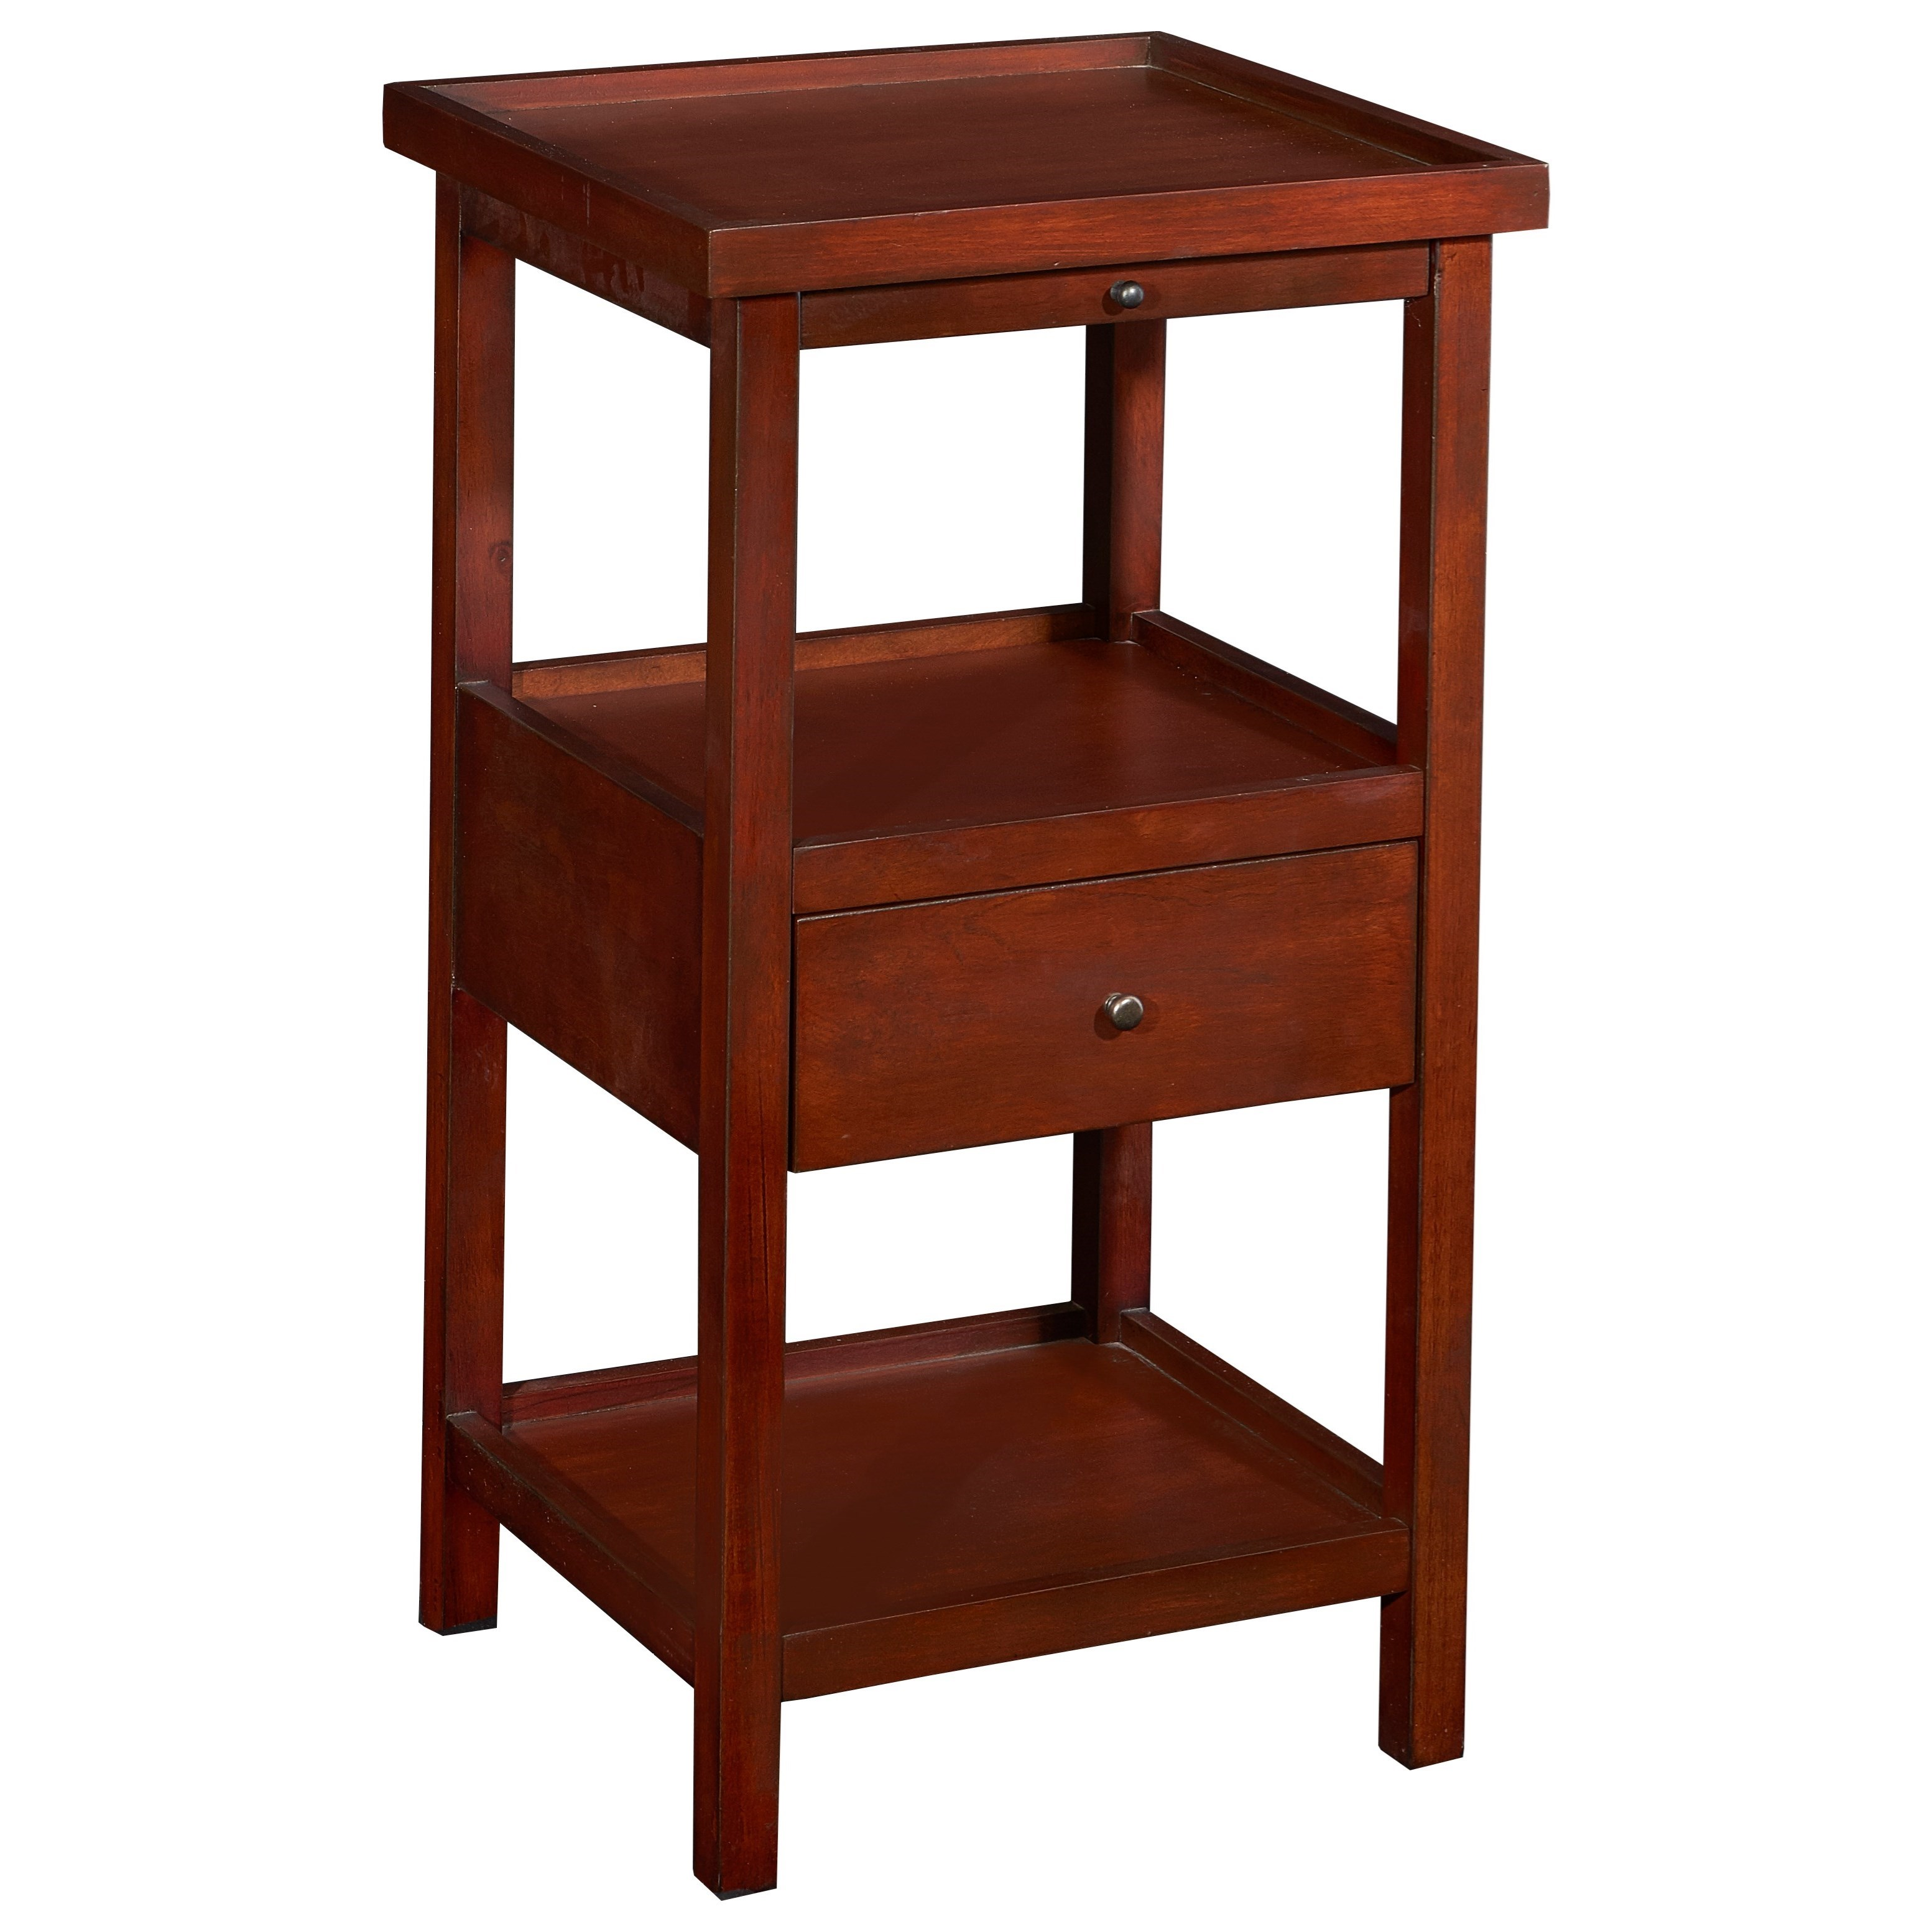 Powell Accent Furniture Palmer Table with Shelf - Item Number: 16A8255CH